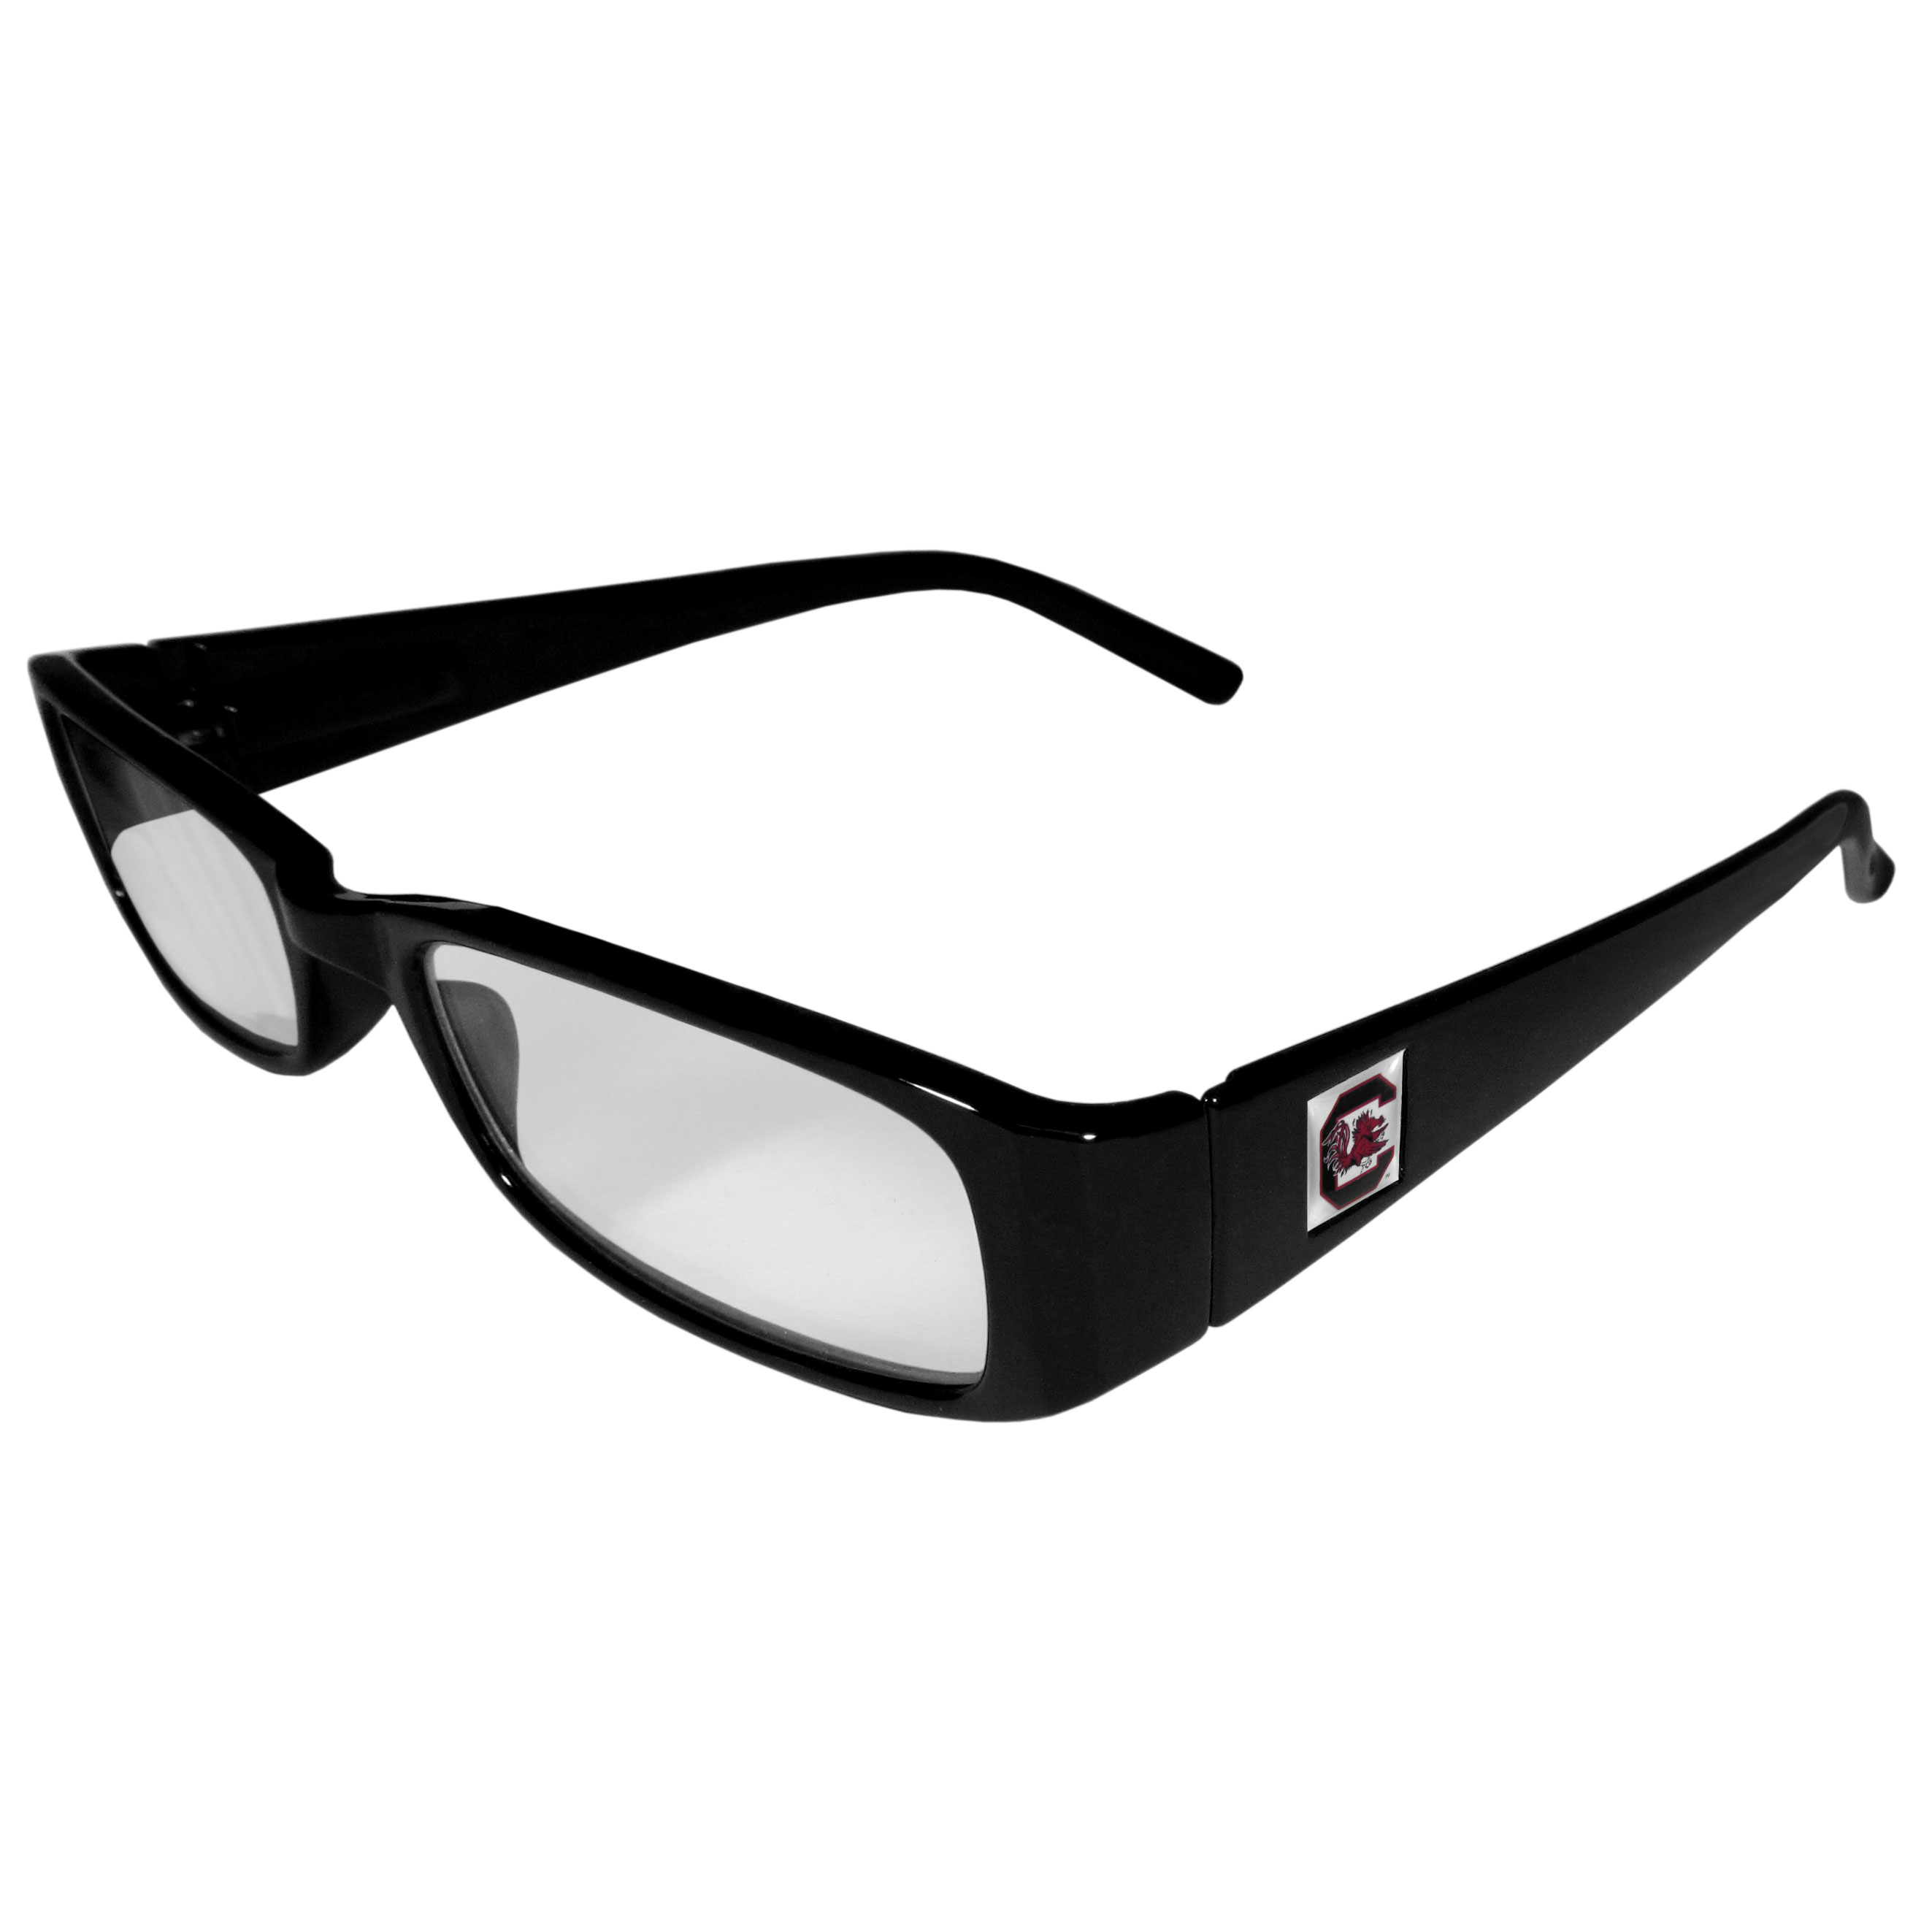 S. Carolina Gamecocks Black Reading Glasses +1.25 - Our S. Carolina Gamecocks reading glasses are 5.25 inches wide and feature the team logo on each arm. Magnification Power 1.25